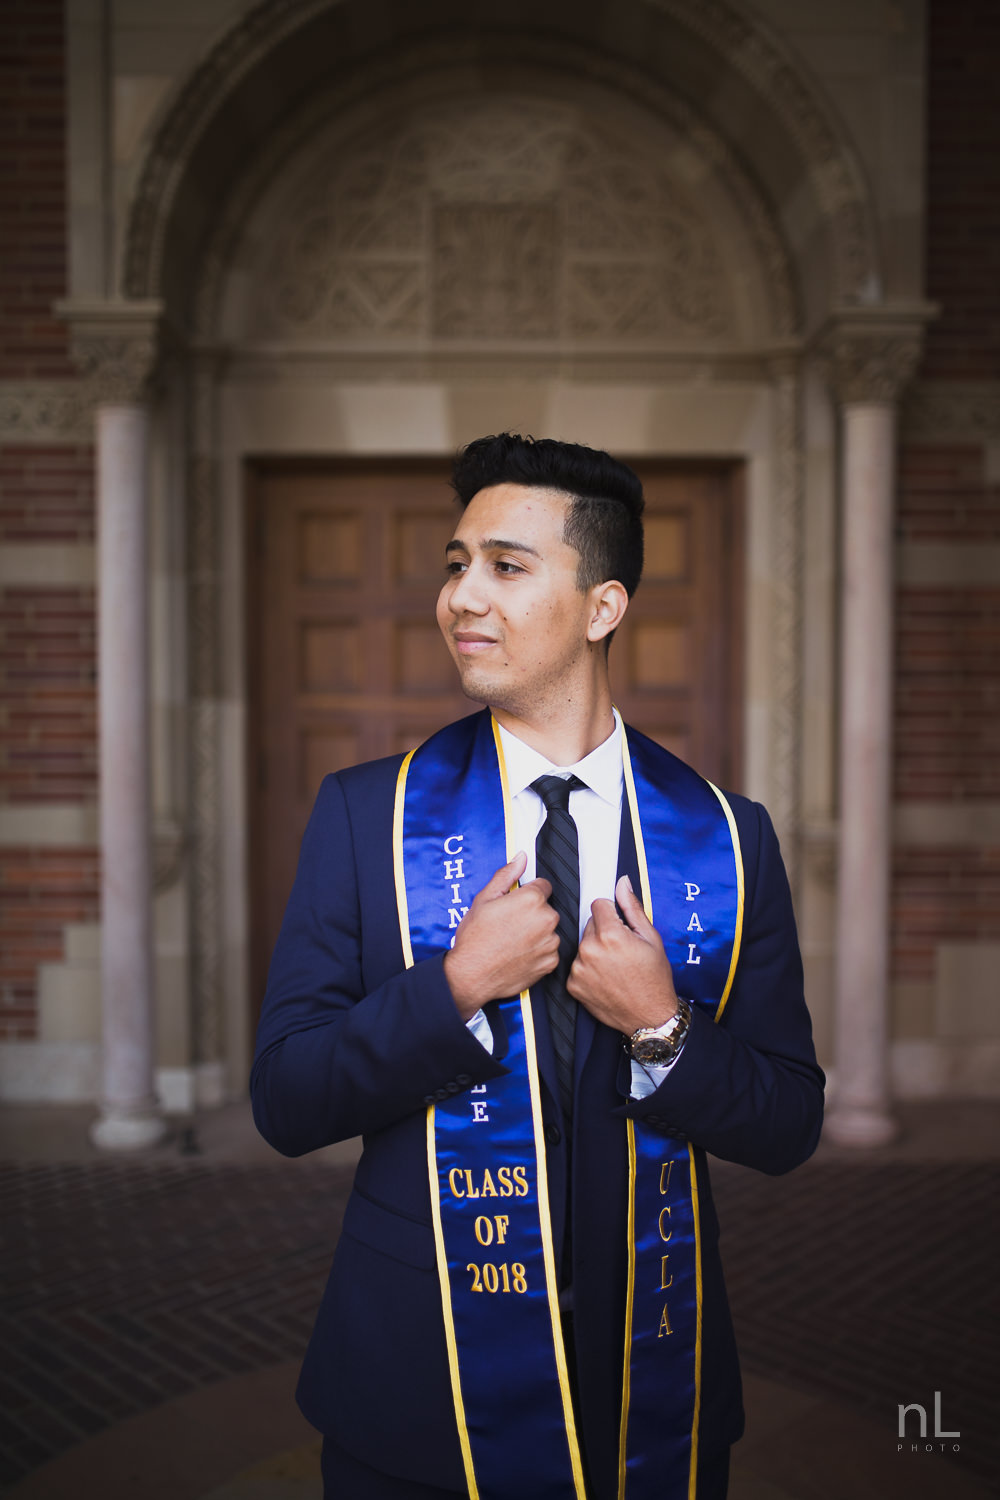 UCLA Class of 2019 graduate wearing suit and tie and graduation sash smiling and standing in front of Royce Hall.